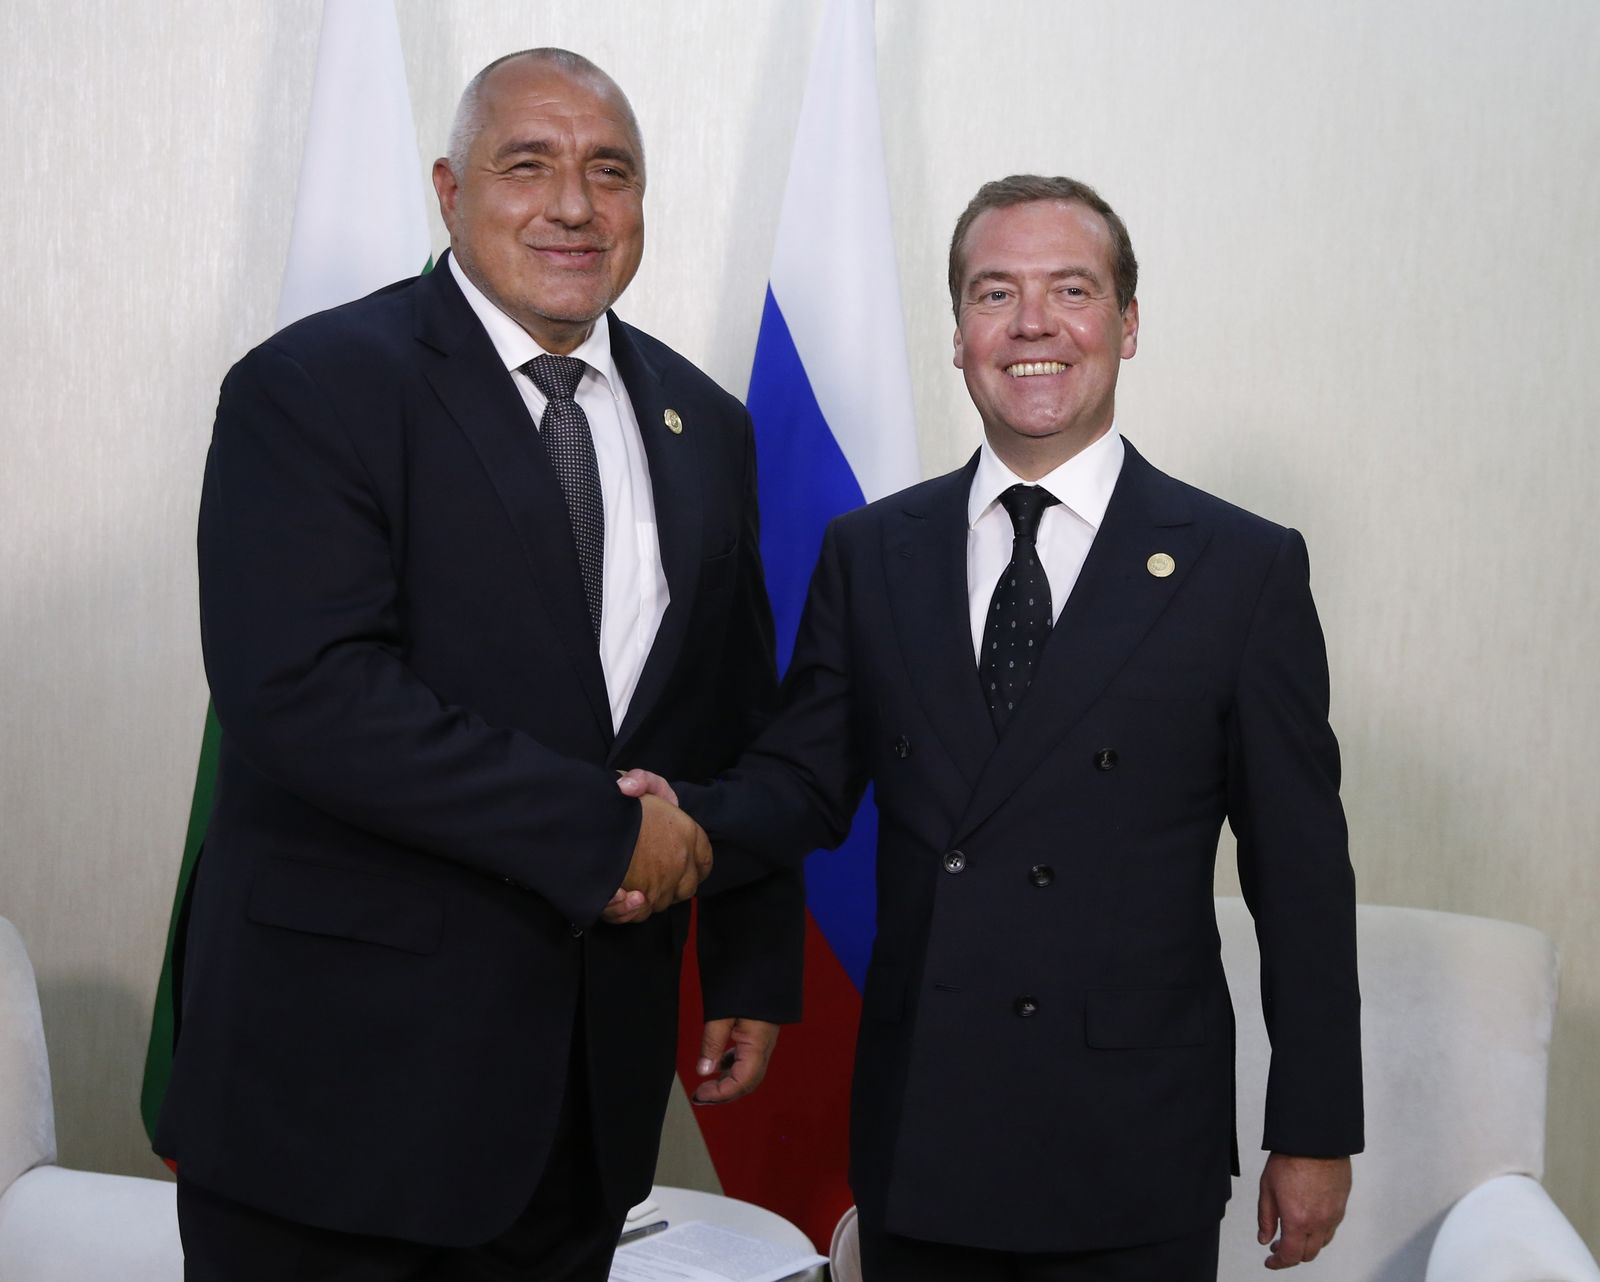 Russian Prime Minister Dmitry Medvedev, right, and Bulgarian Prime Minister Boyko Borissov pose for a photo at the First Caspian Economic Forum in Turkmenbashi, Turkmenistan, Monday, Aug. 12, 2019. (Dmitry Astakhov, Sputnik, Government Pool Photo via AP)